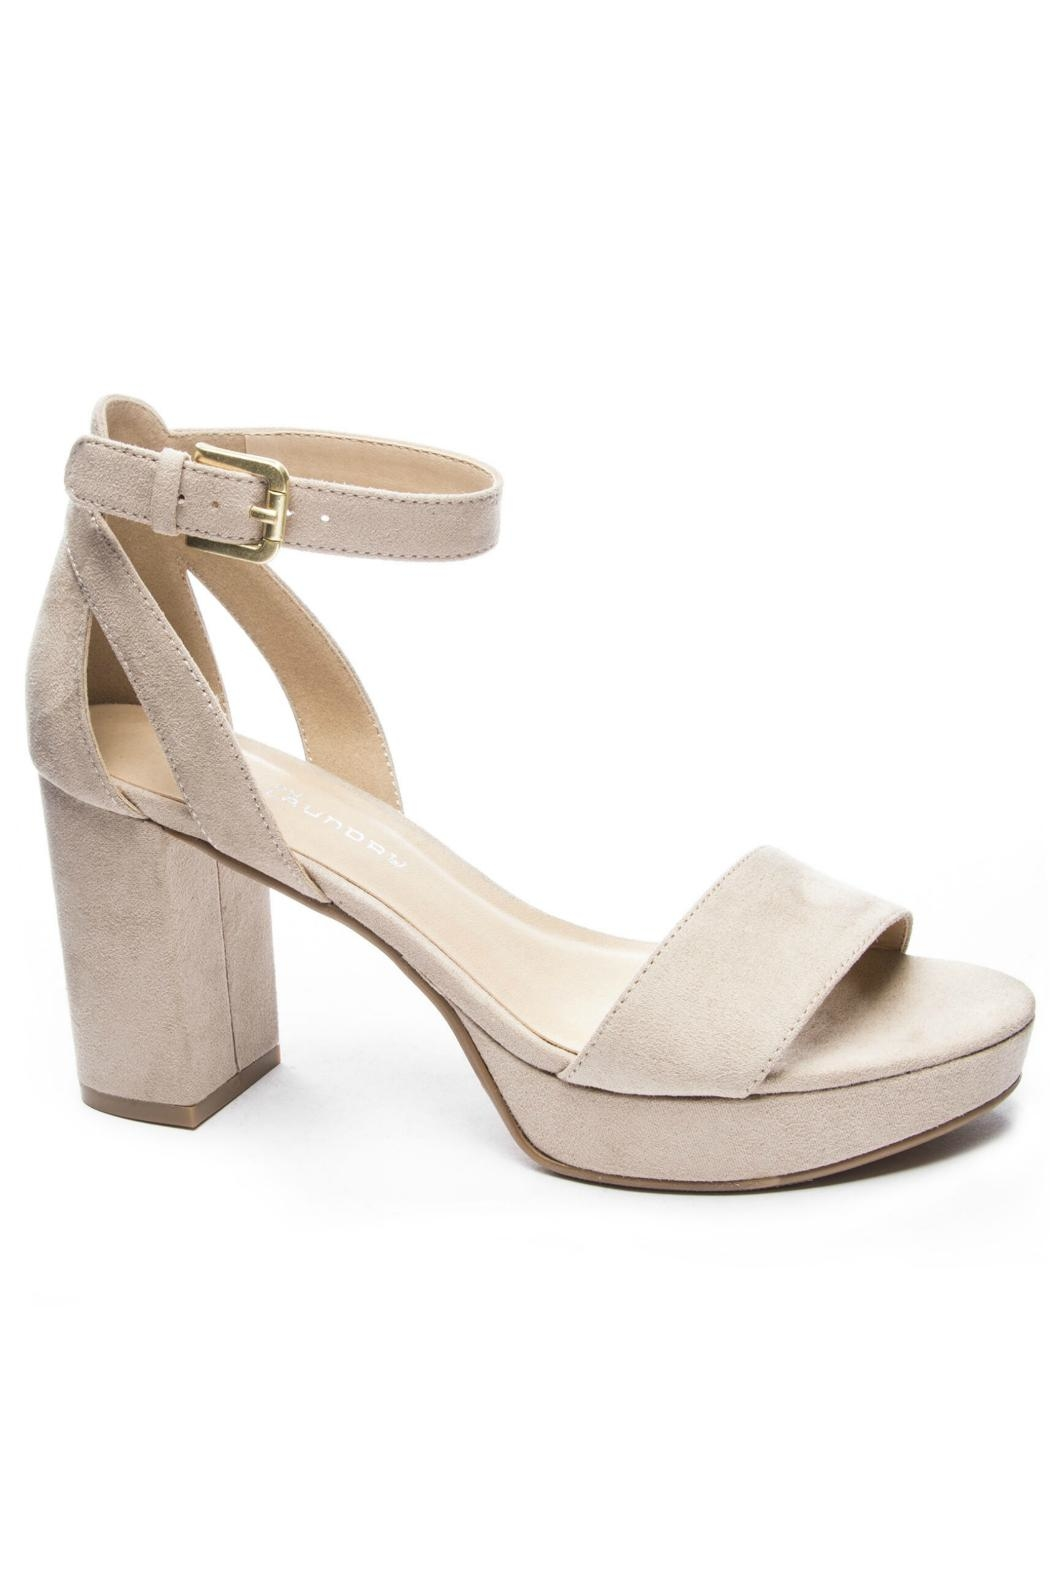 CL by Chinese Laundry Super Suede Chunky Heels - Main Image